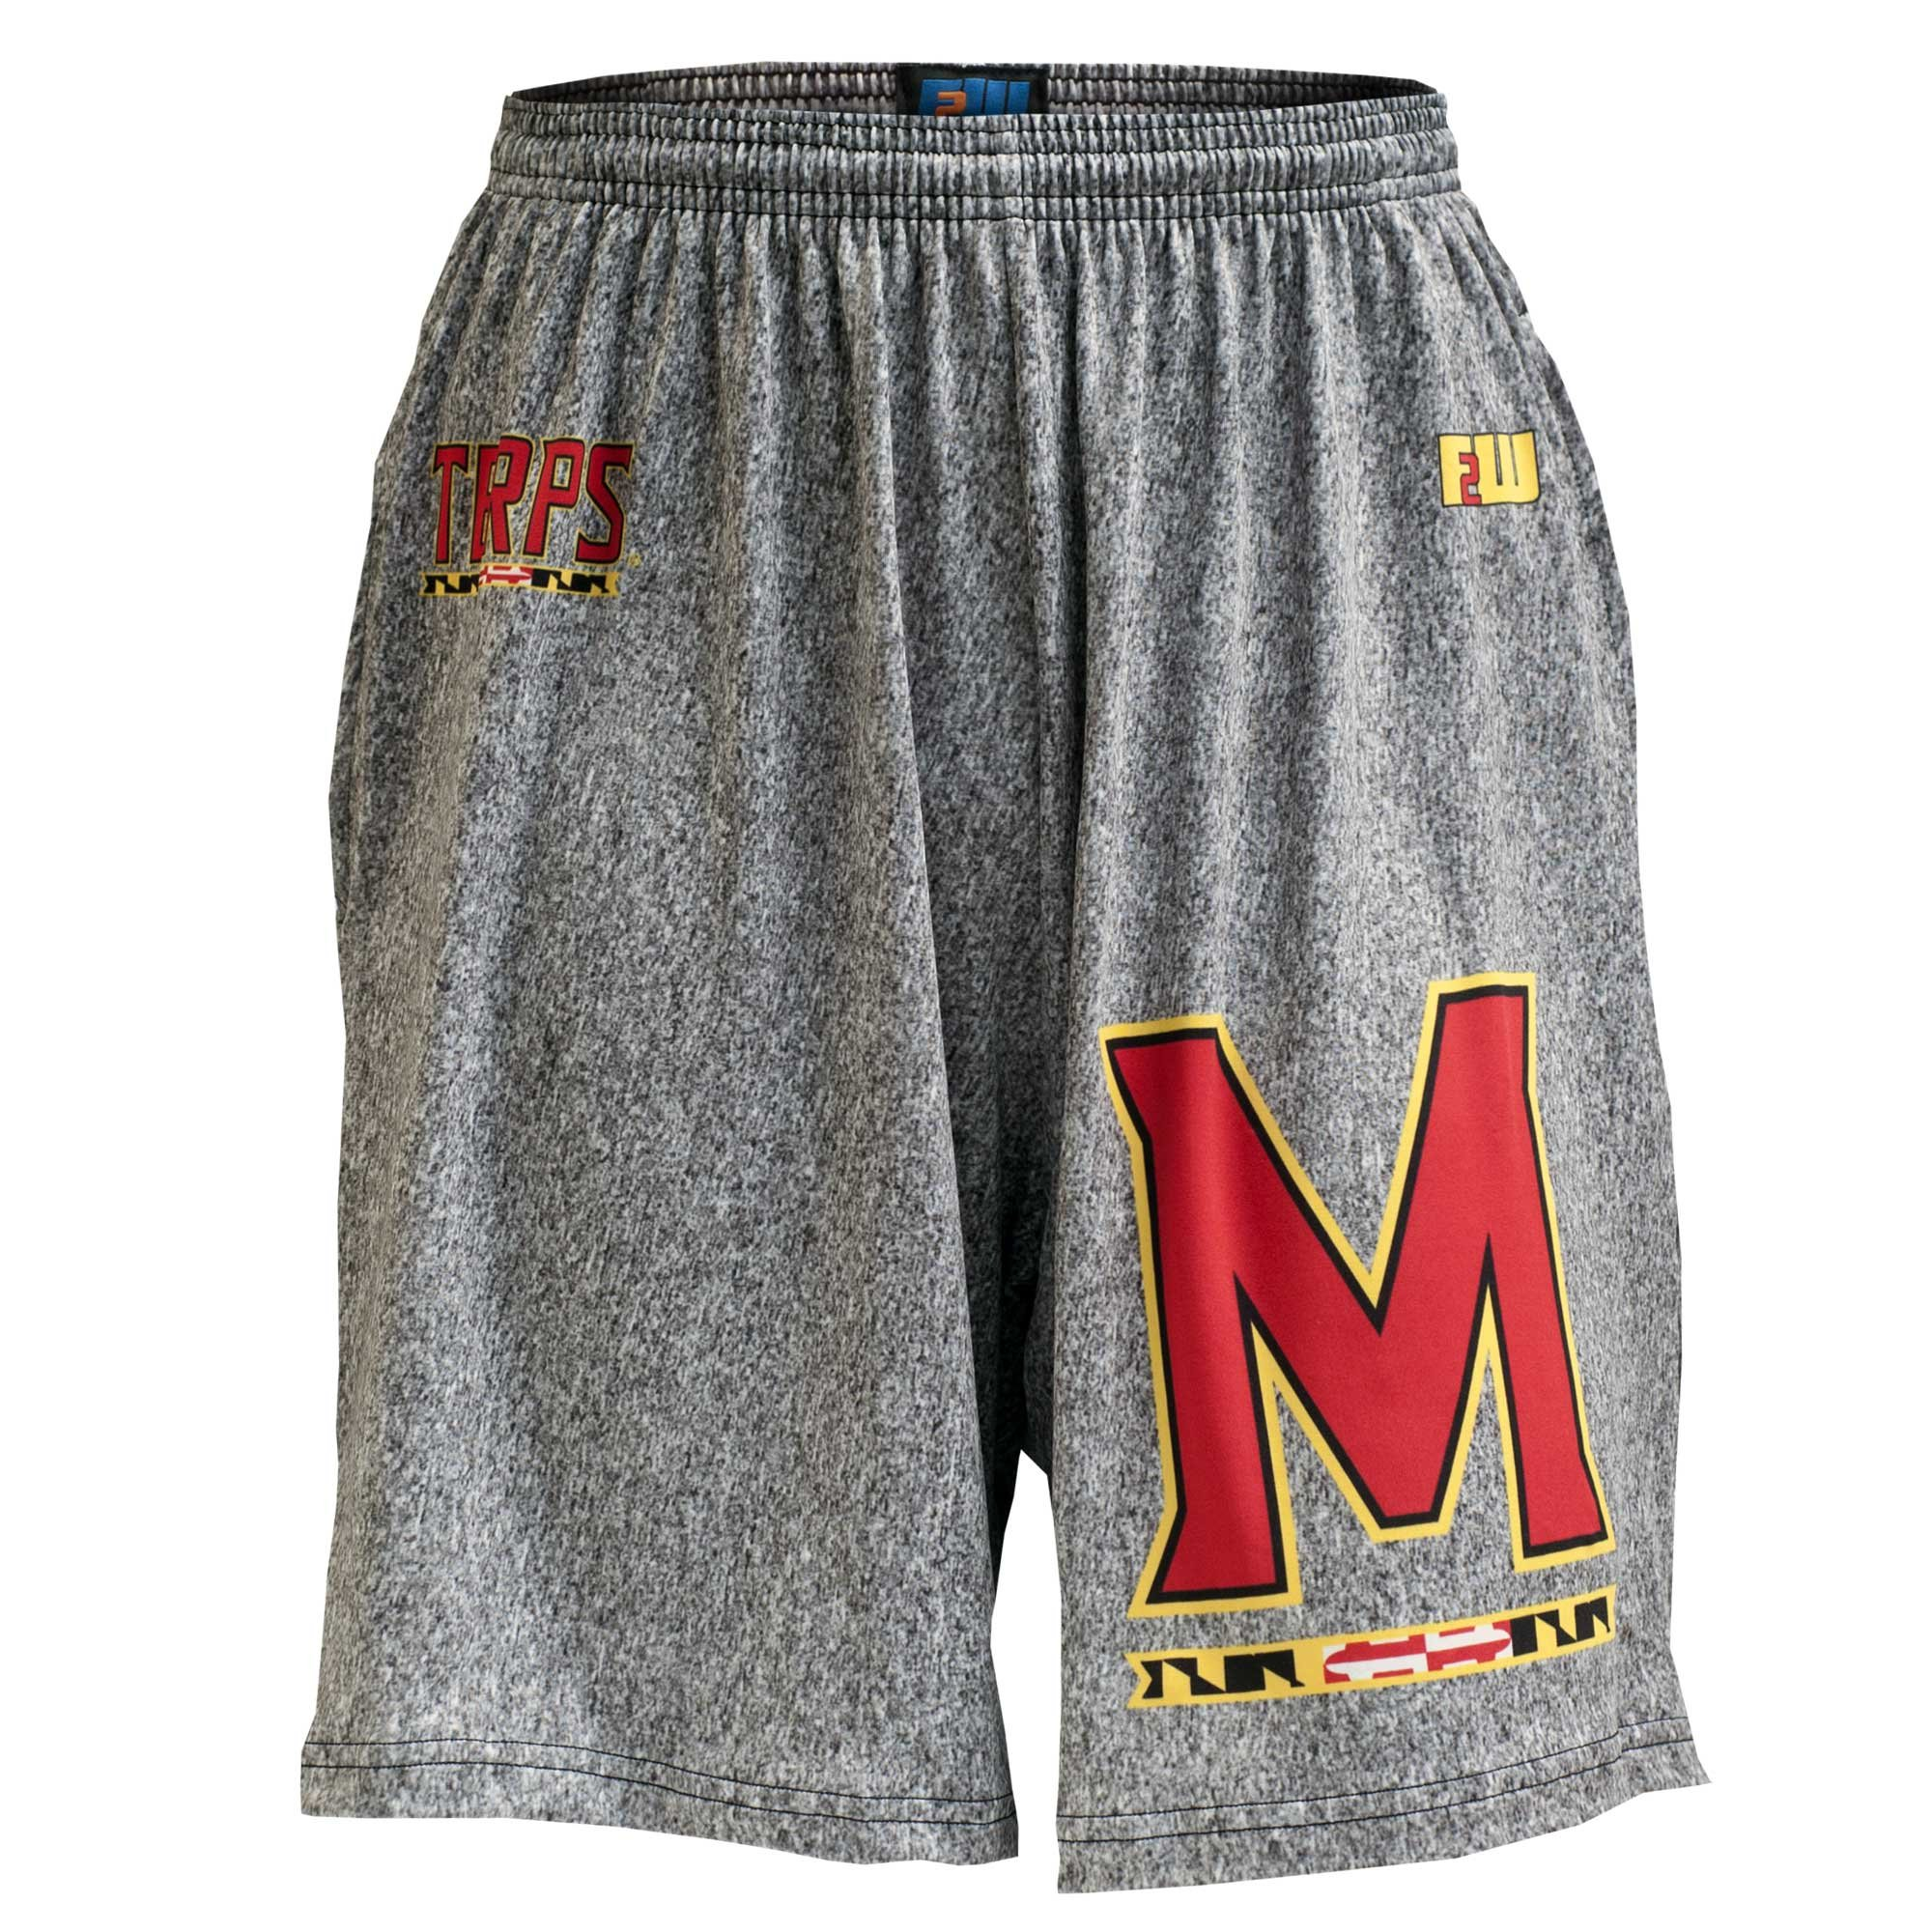 Fit 2 Win Maryland Terps Heathered Gray Sublimated Short, XL